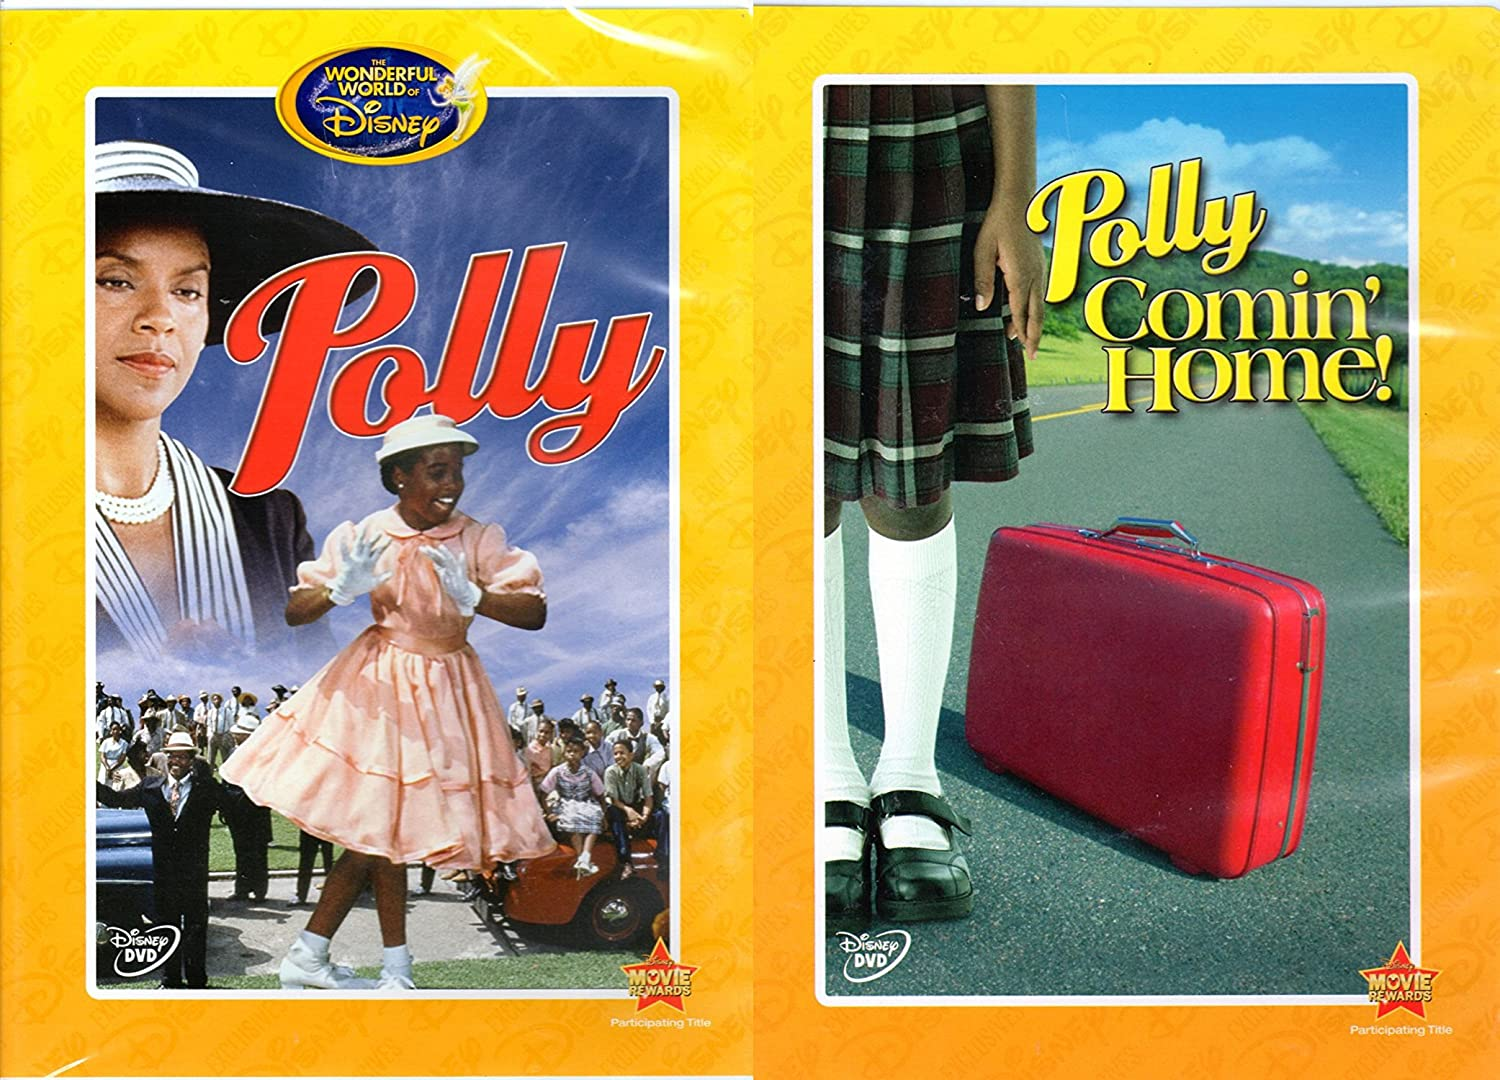 Disney Exclusive Classics: Polly & Polly Comin' Home 2-DVD Bundle from the Wonderful World of Disney